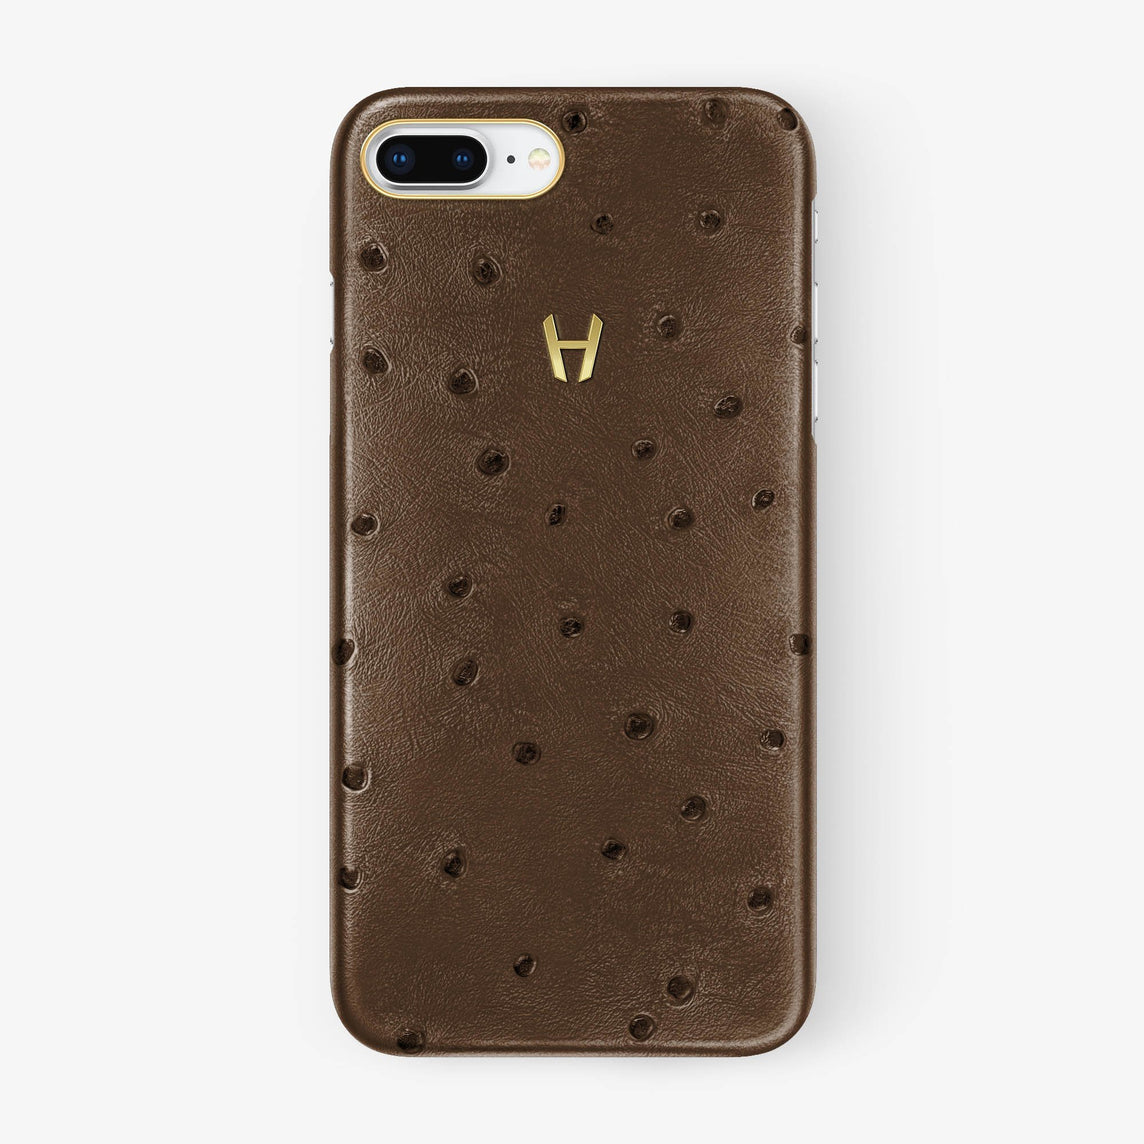 Tobacco Ostrich iPhone Case for iPhone 7/8 Plus finishing yellow gold - Hadoro Luxury Cases